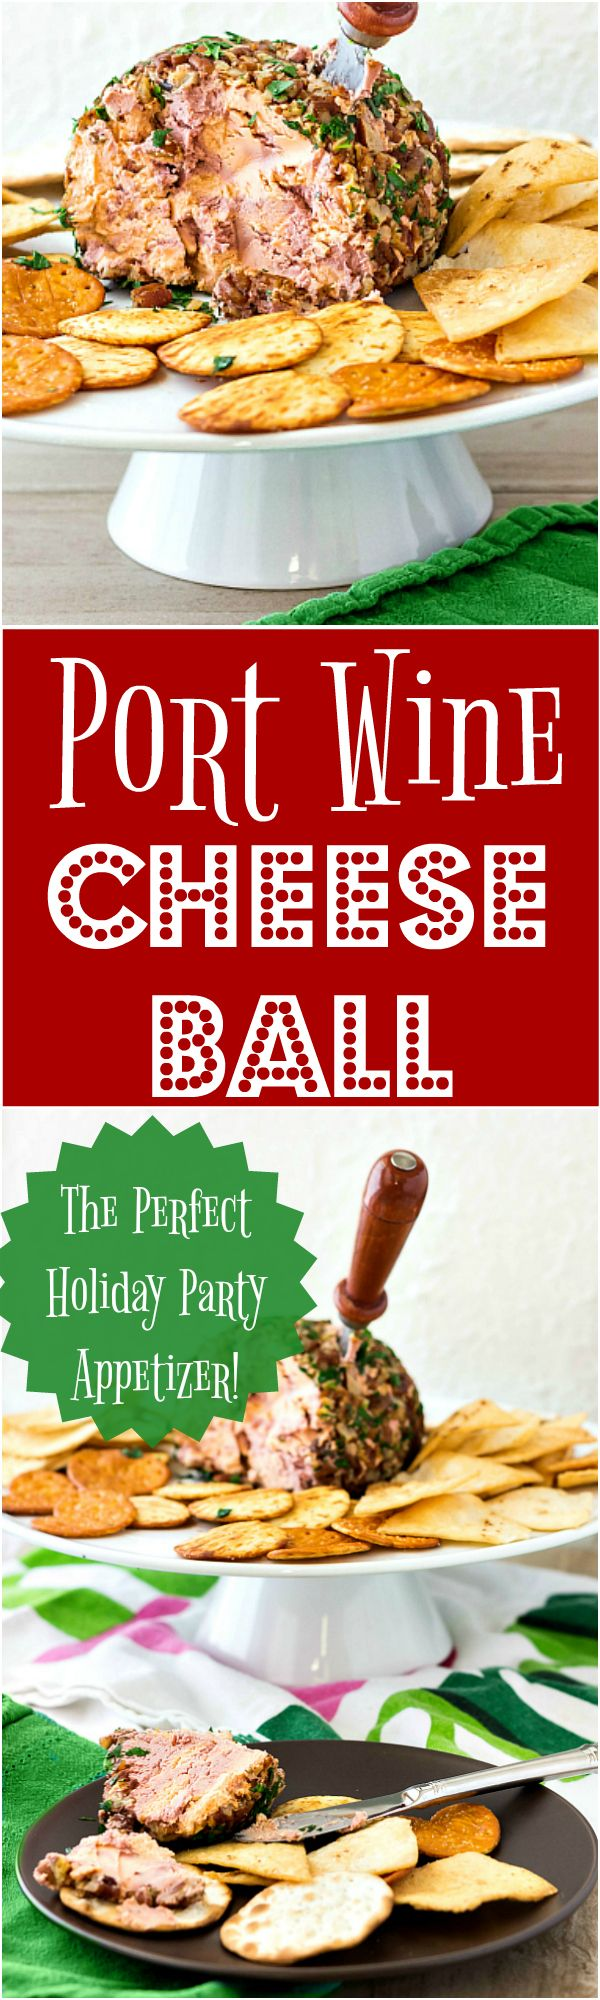 This Port Wine Cheese Ball Recipe Combines Cheddar Cream Cheese And A Port Wine Reduction To Give You The Flavor You L Cheese Ball Cheese Ball Recipes Recipes